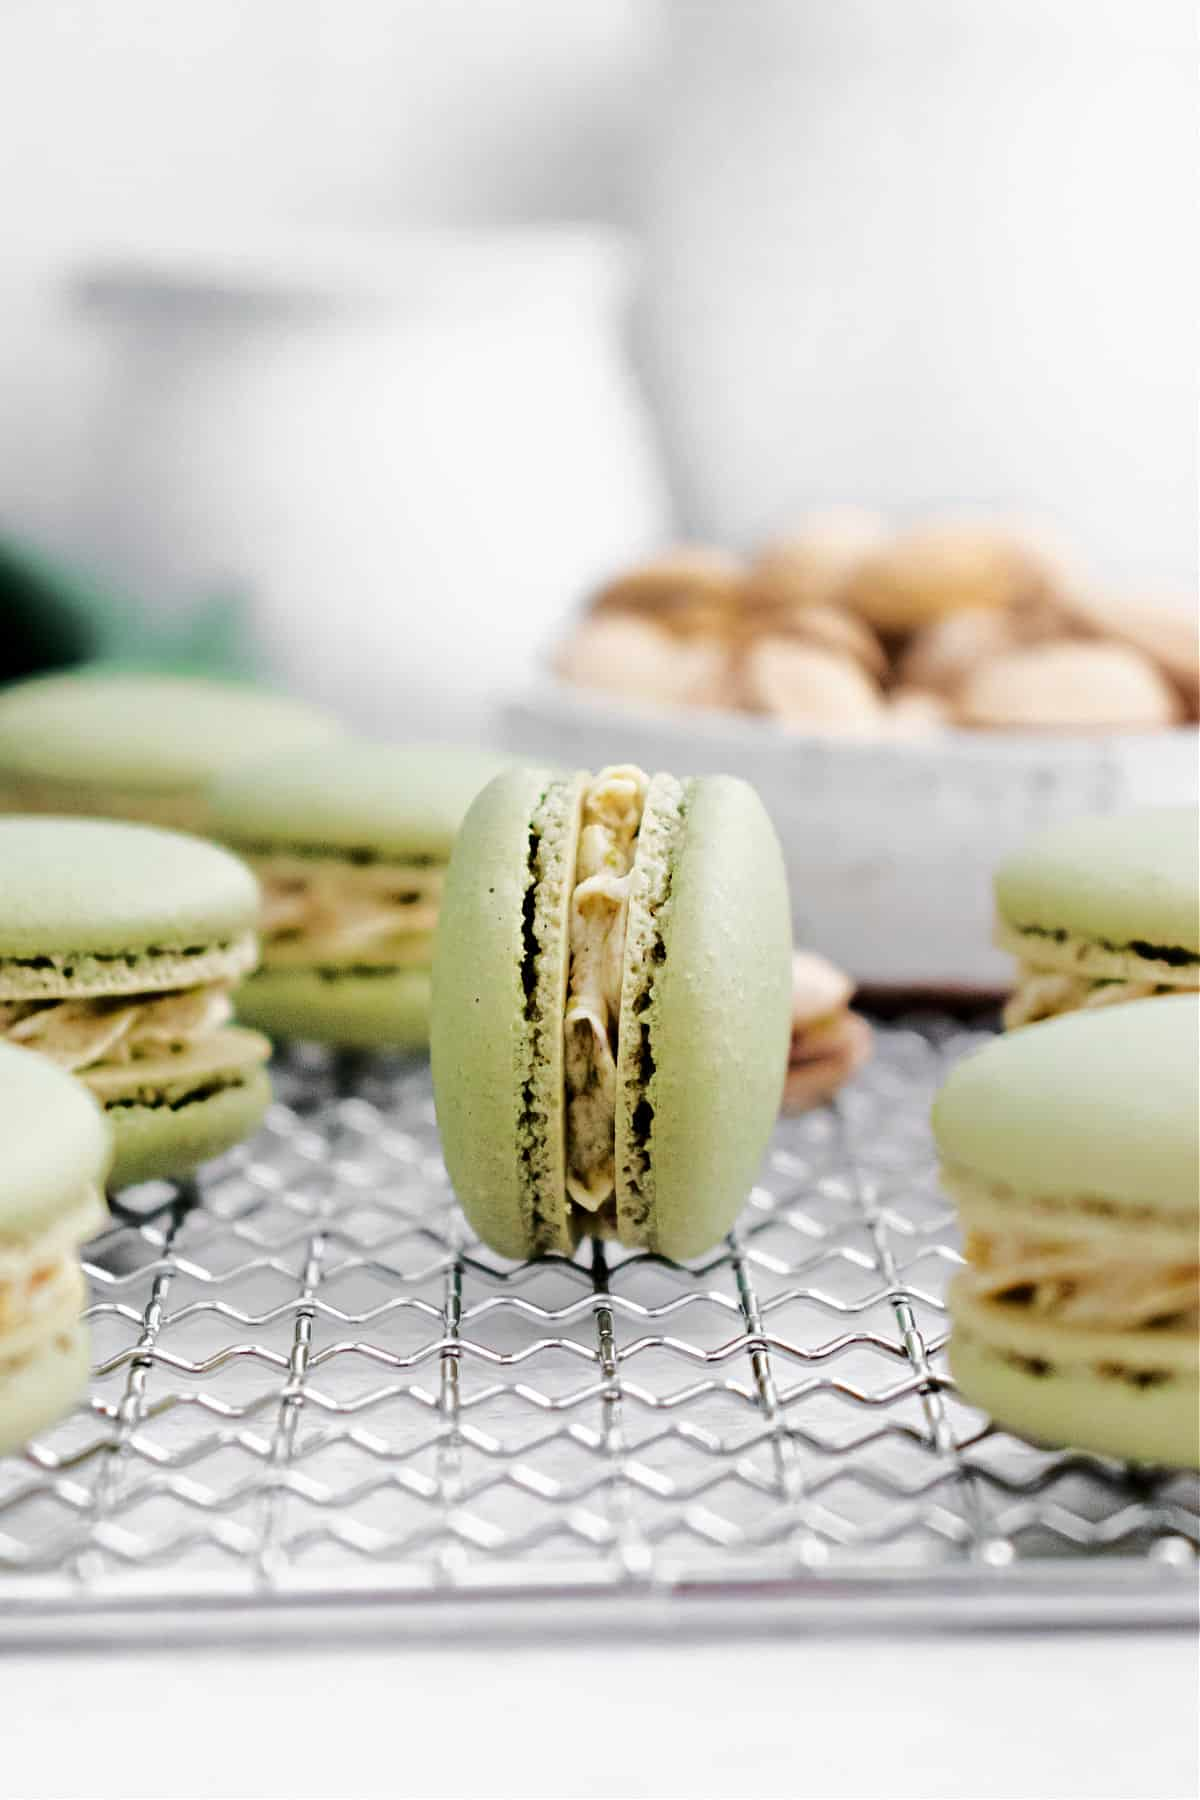 Pistachio macarons on a wire cooling rack.